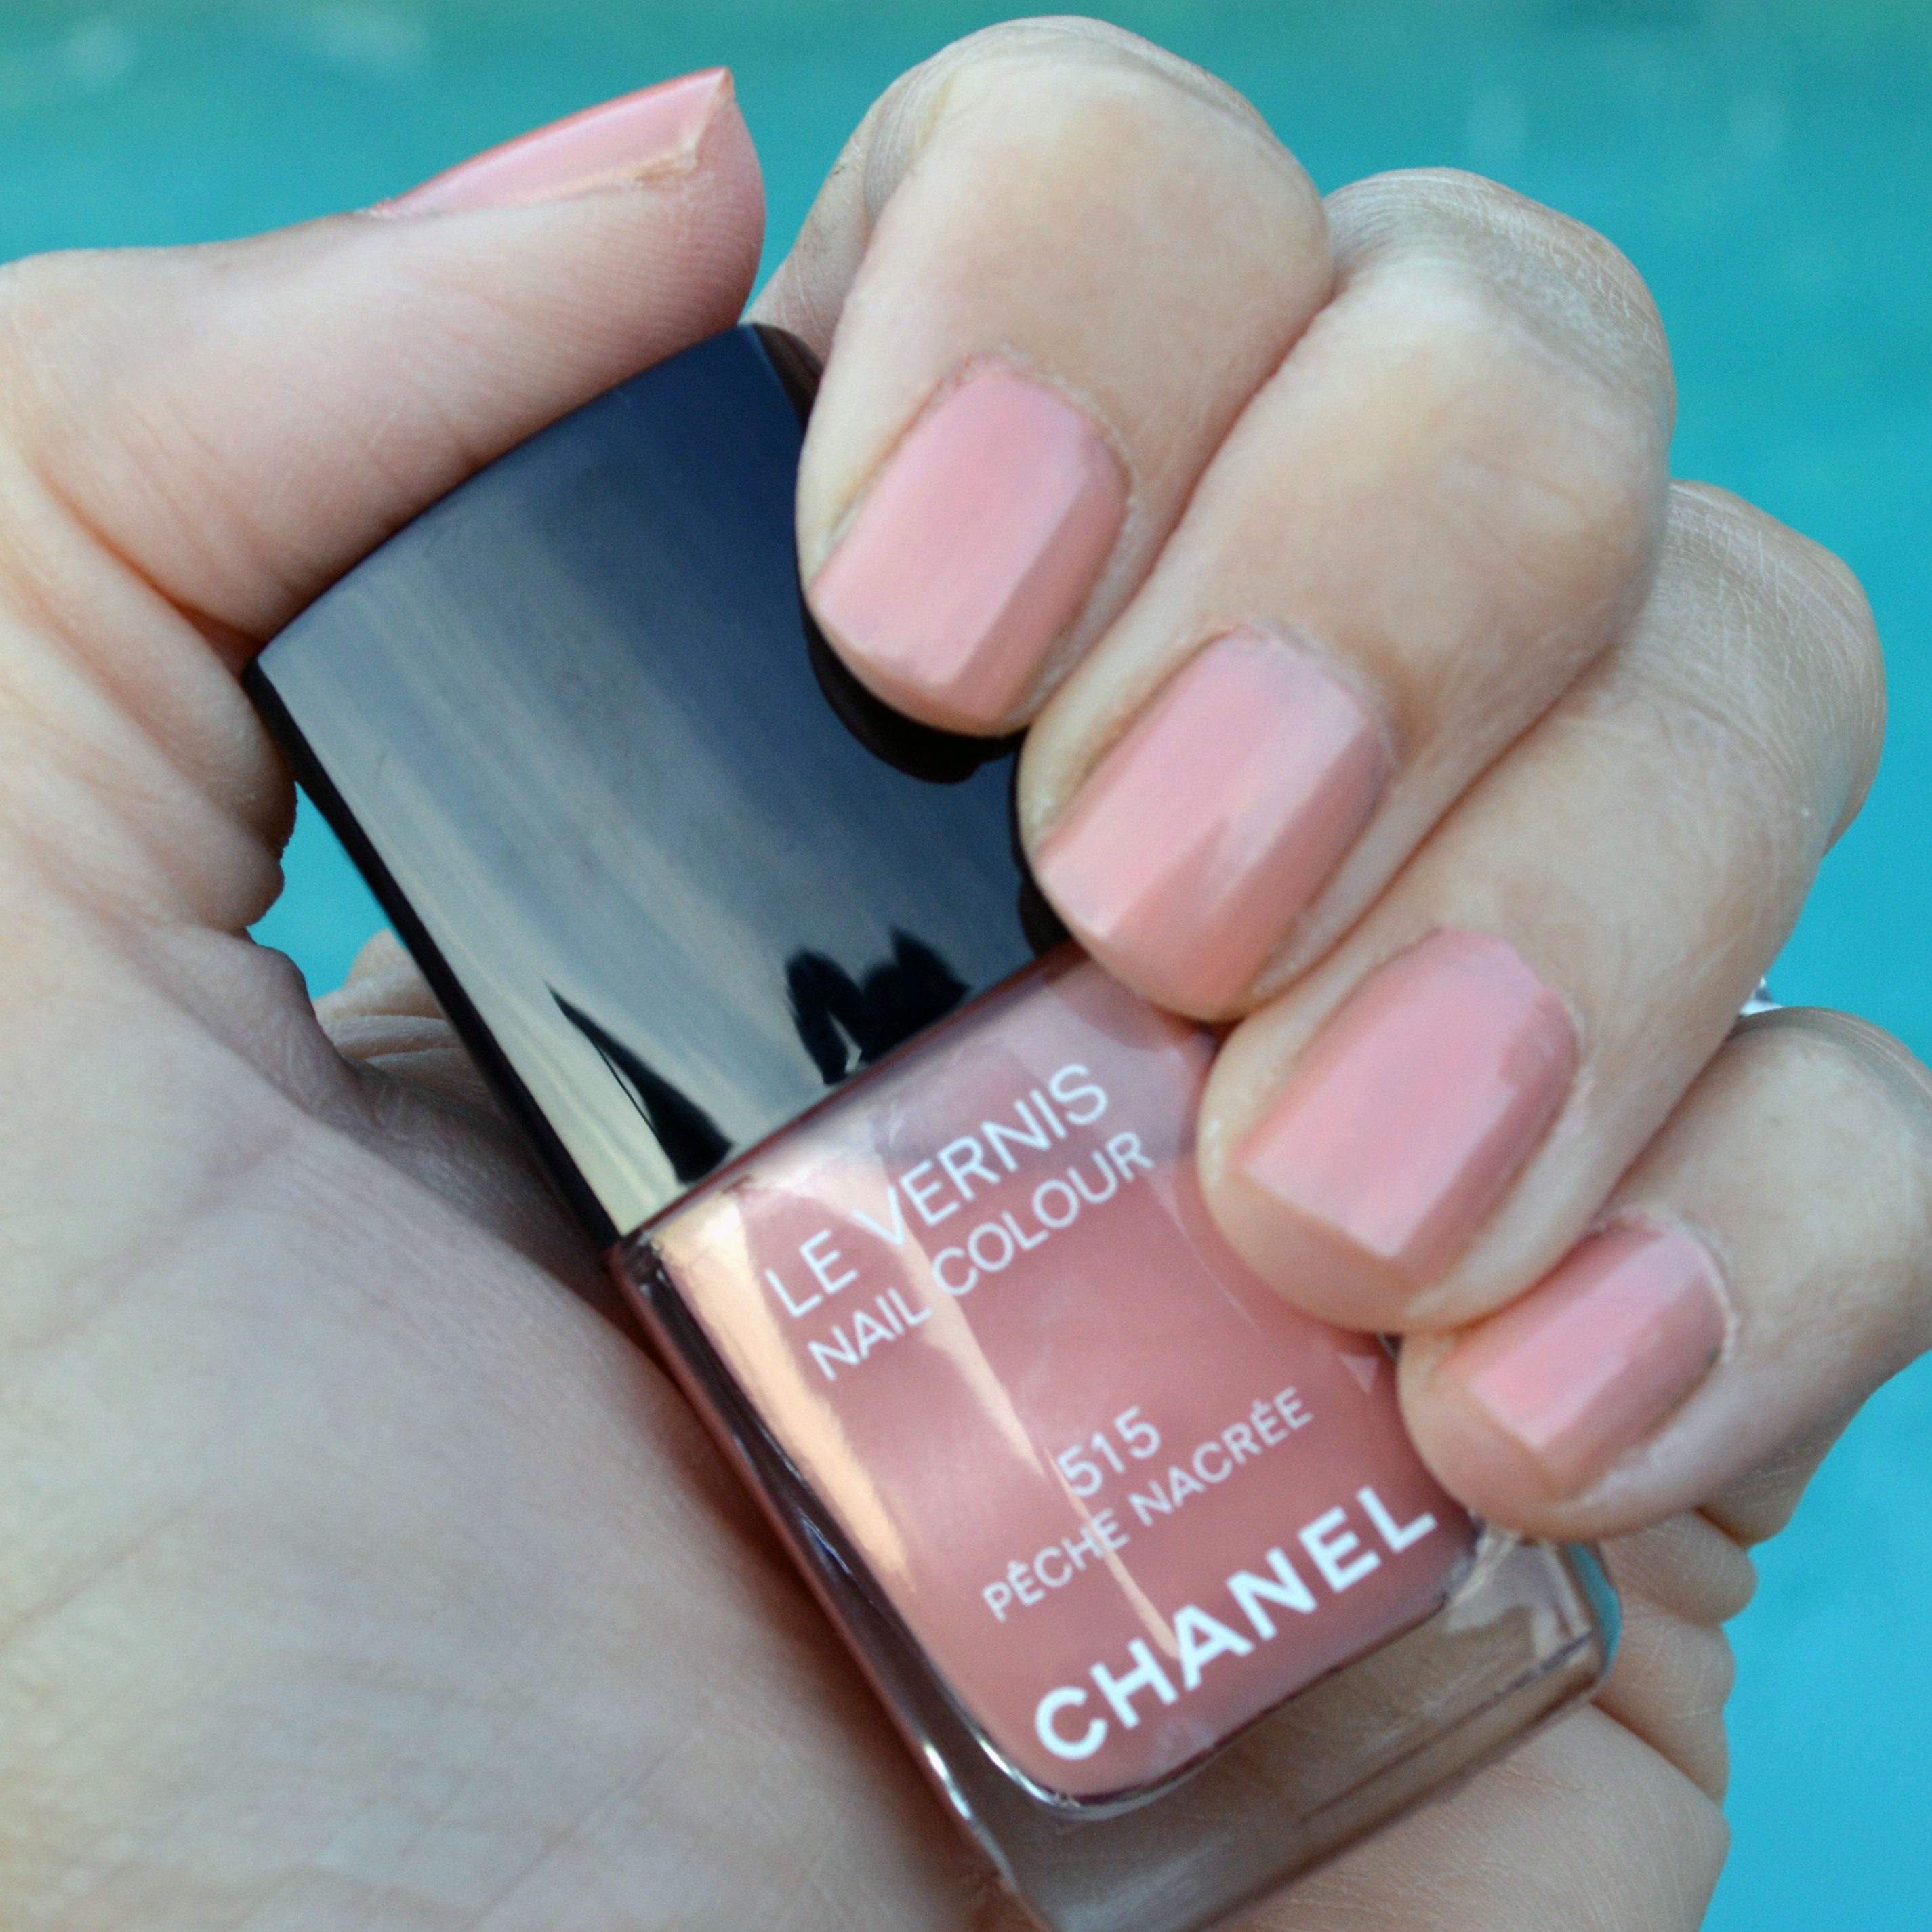 Chanel Peche Nagree Nail Polish Review Bay Area Fashionista